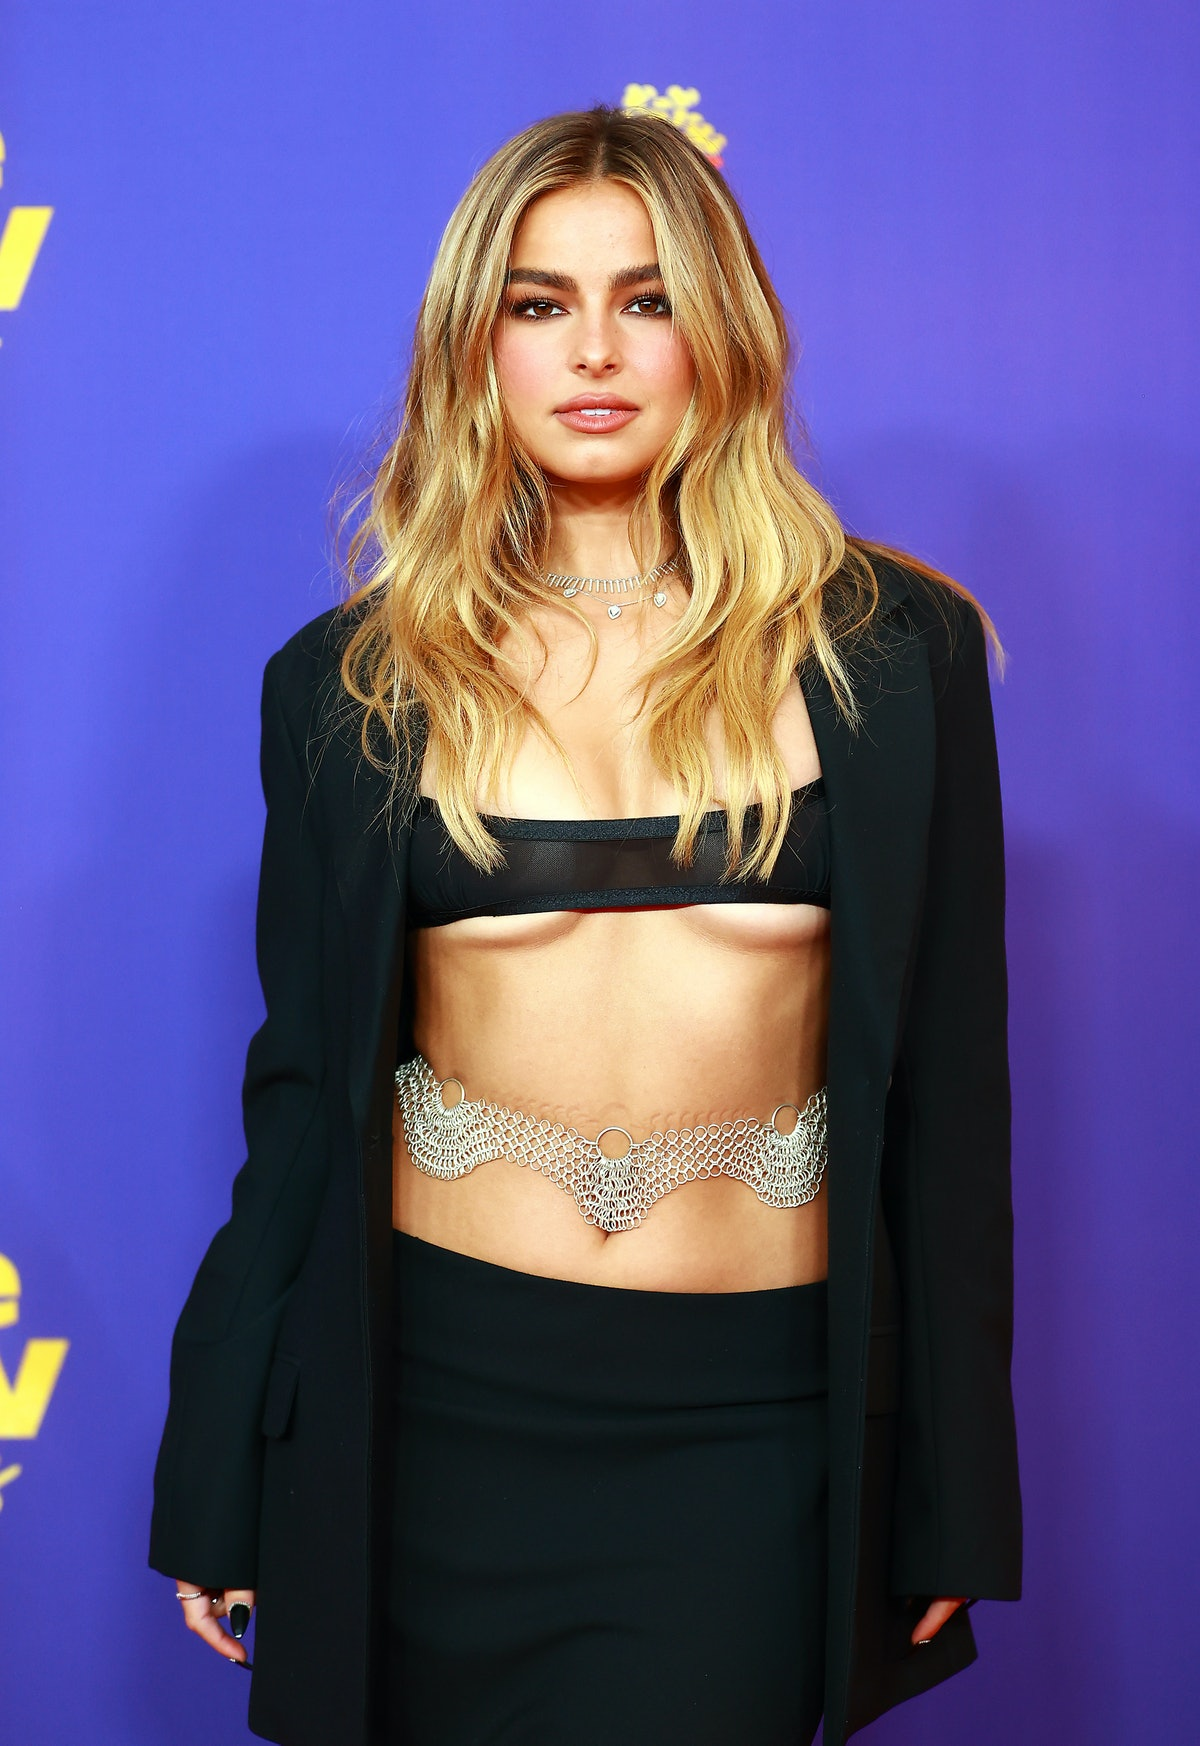 Addison Rae revealed she wants to be married by next year in an interview with Hailey Baldwin.